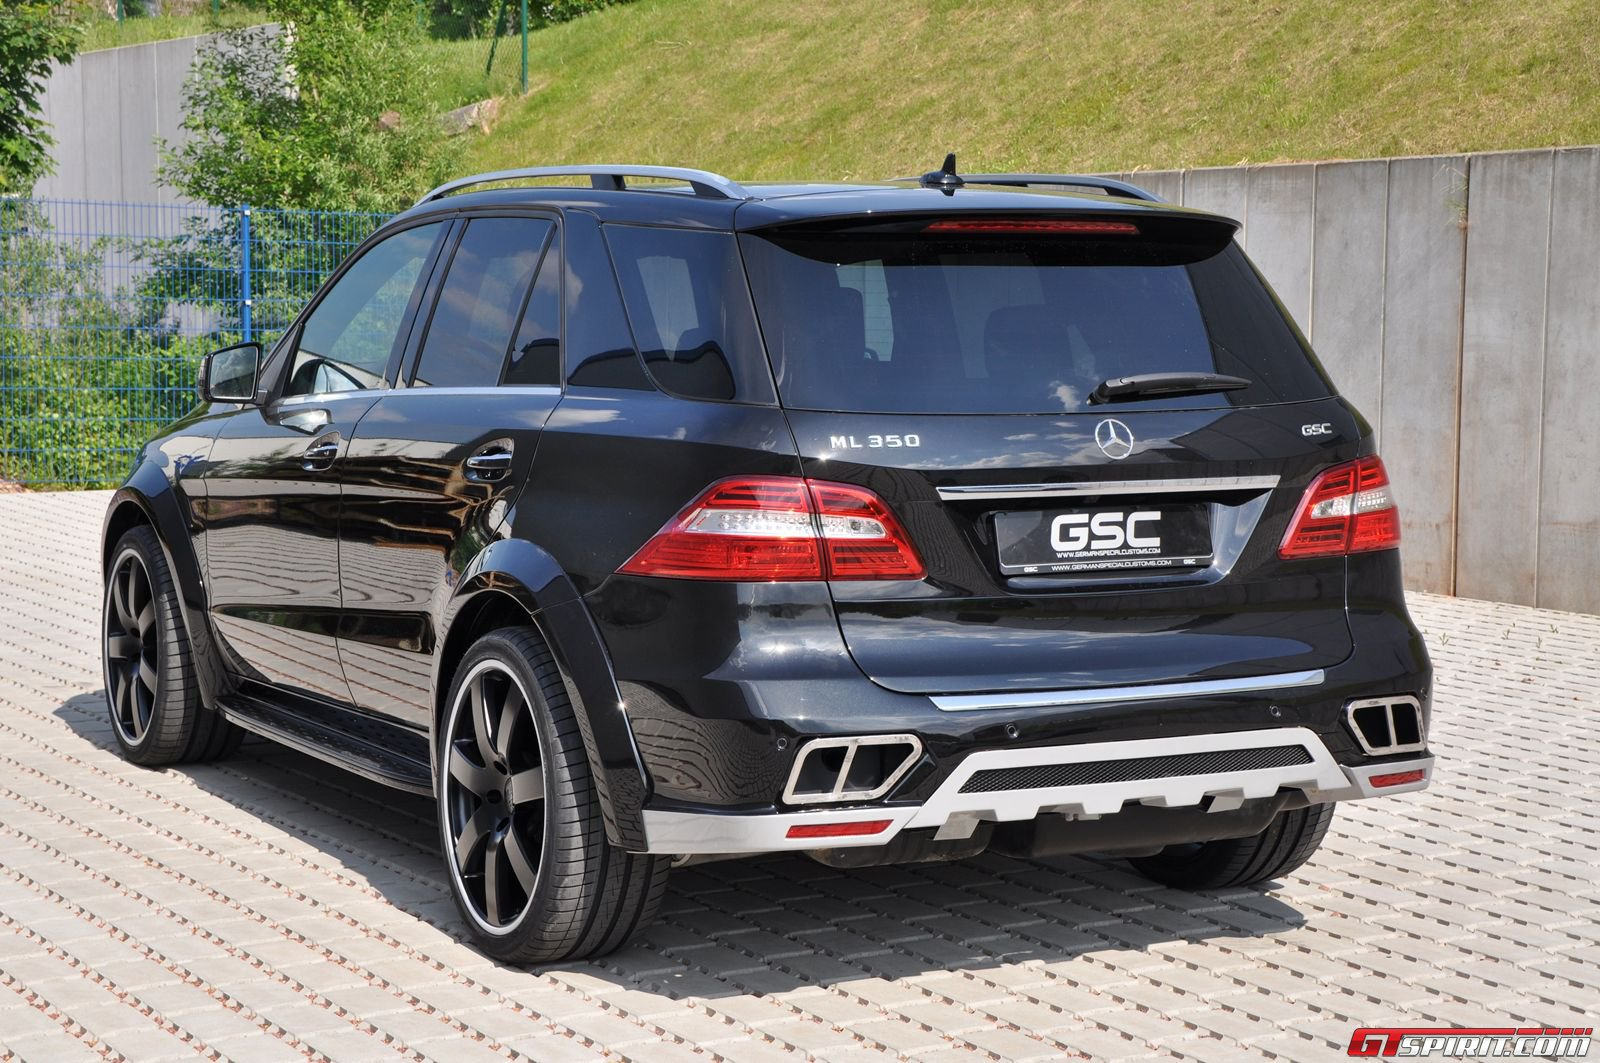 official german special customs wide body kit for mercedes benz ml class gtspirit. Black Bedroom Furniture Sets. Home Design Ideas